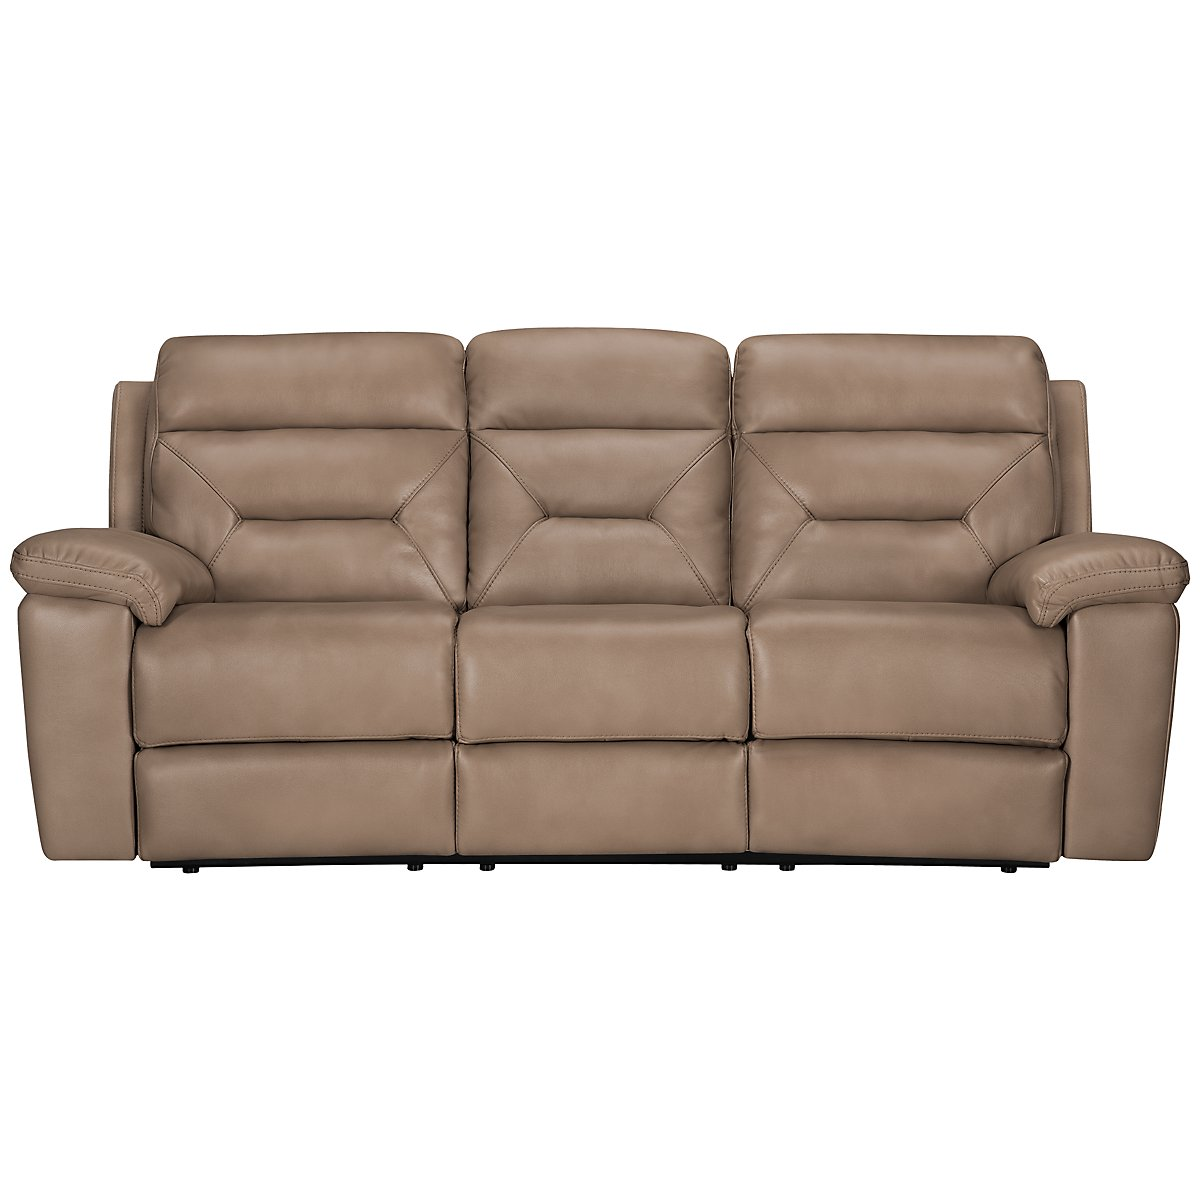 Phoenix Dark Beige Microfiber Micro Power Reclining Sofa